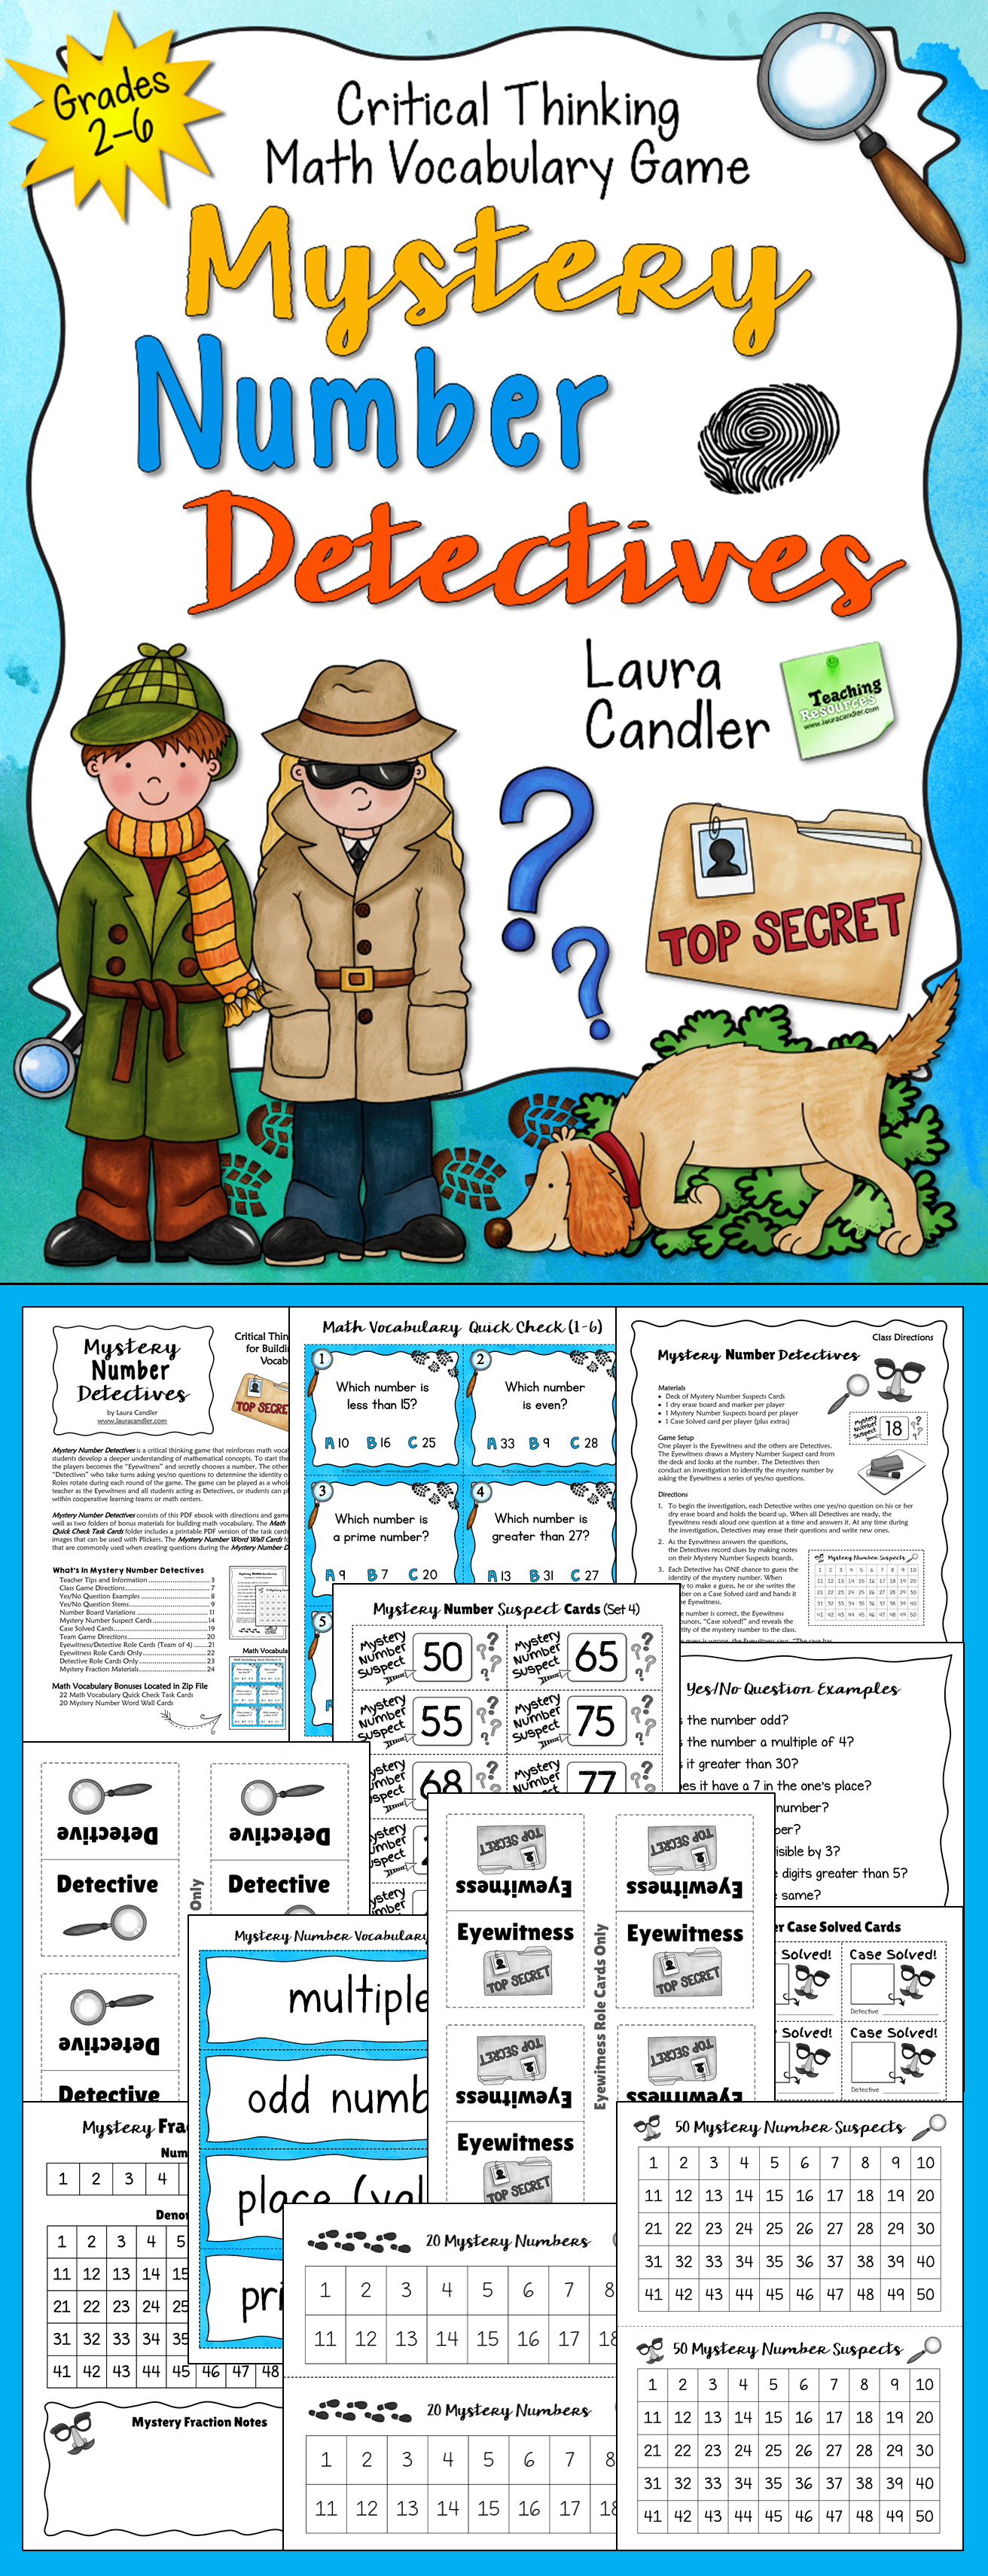 worksheet Mystery Number math vocabulary activities mystery number detectives game task cards